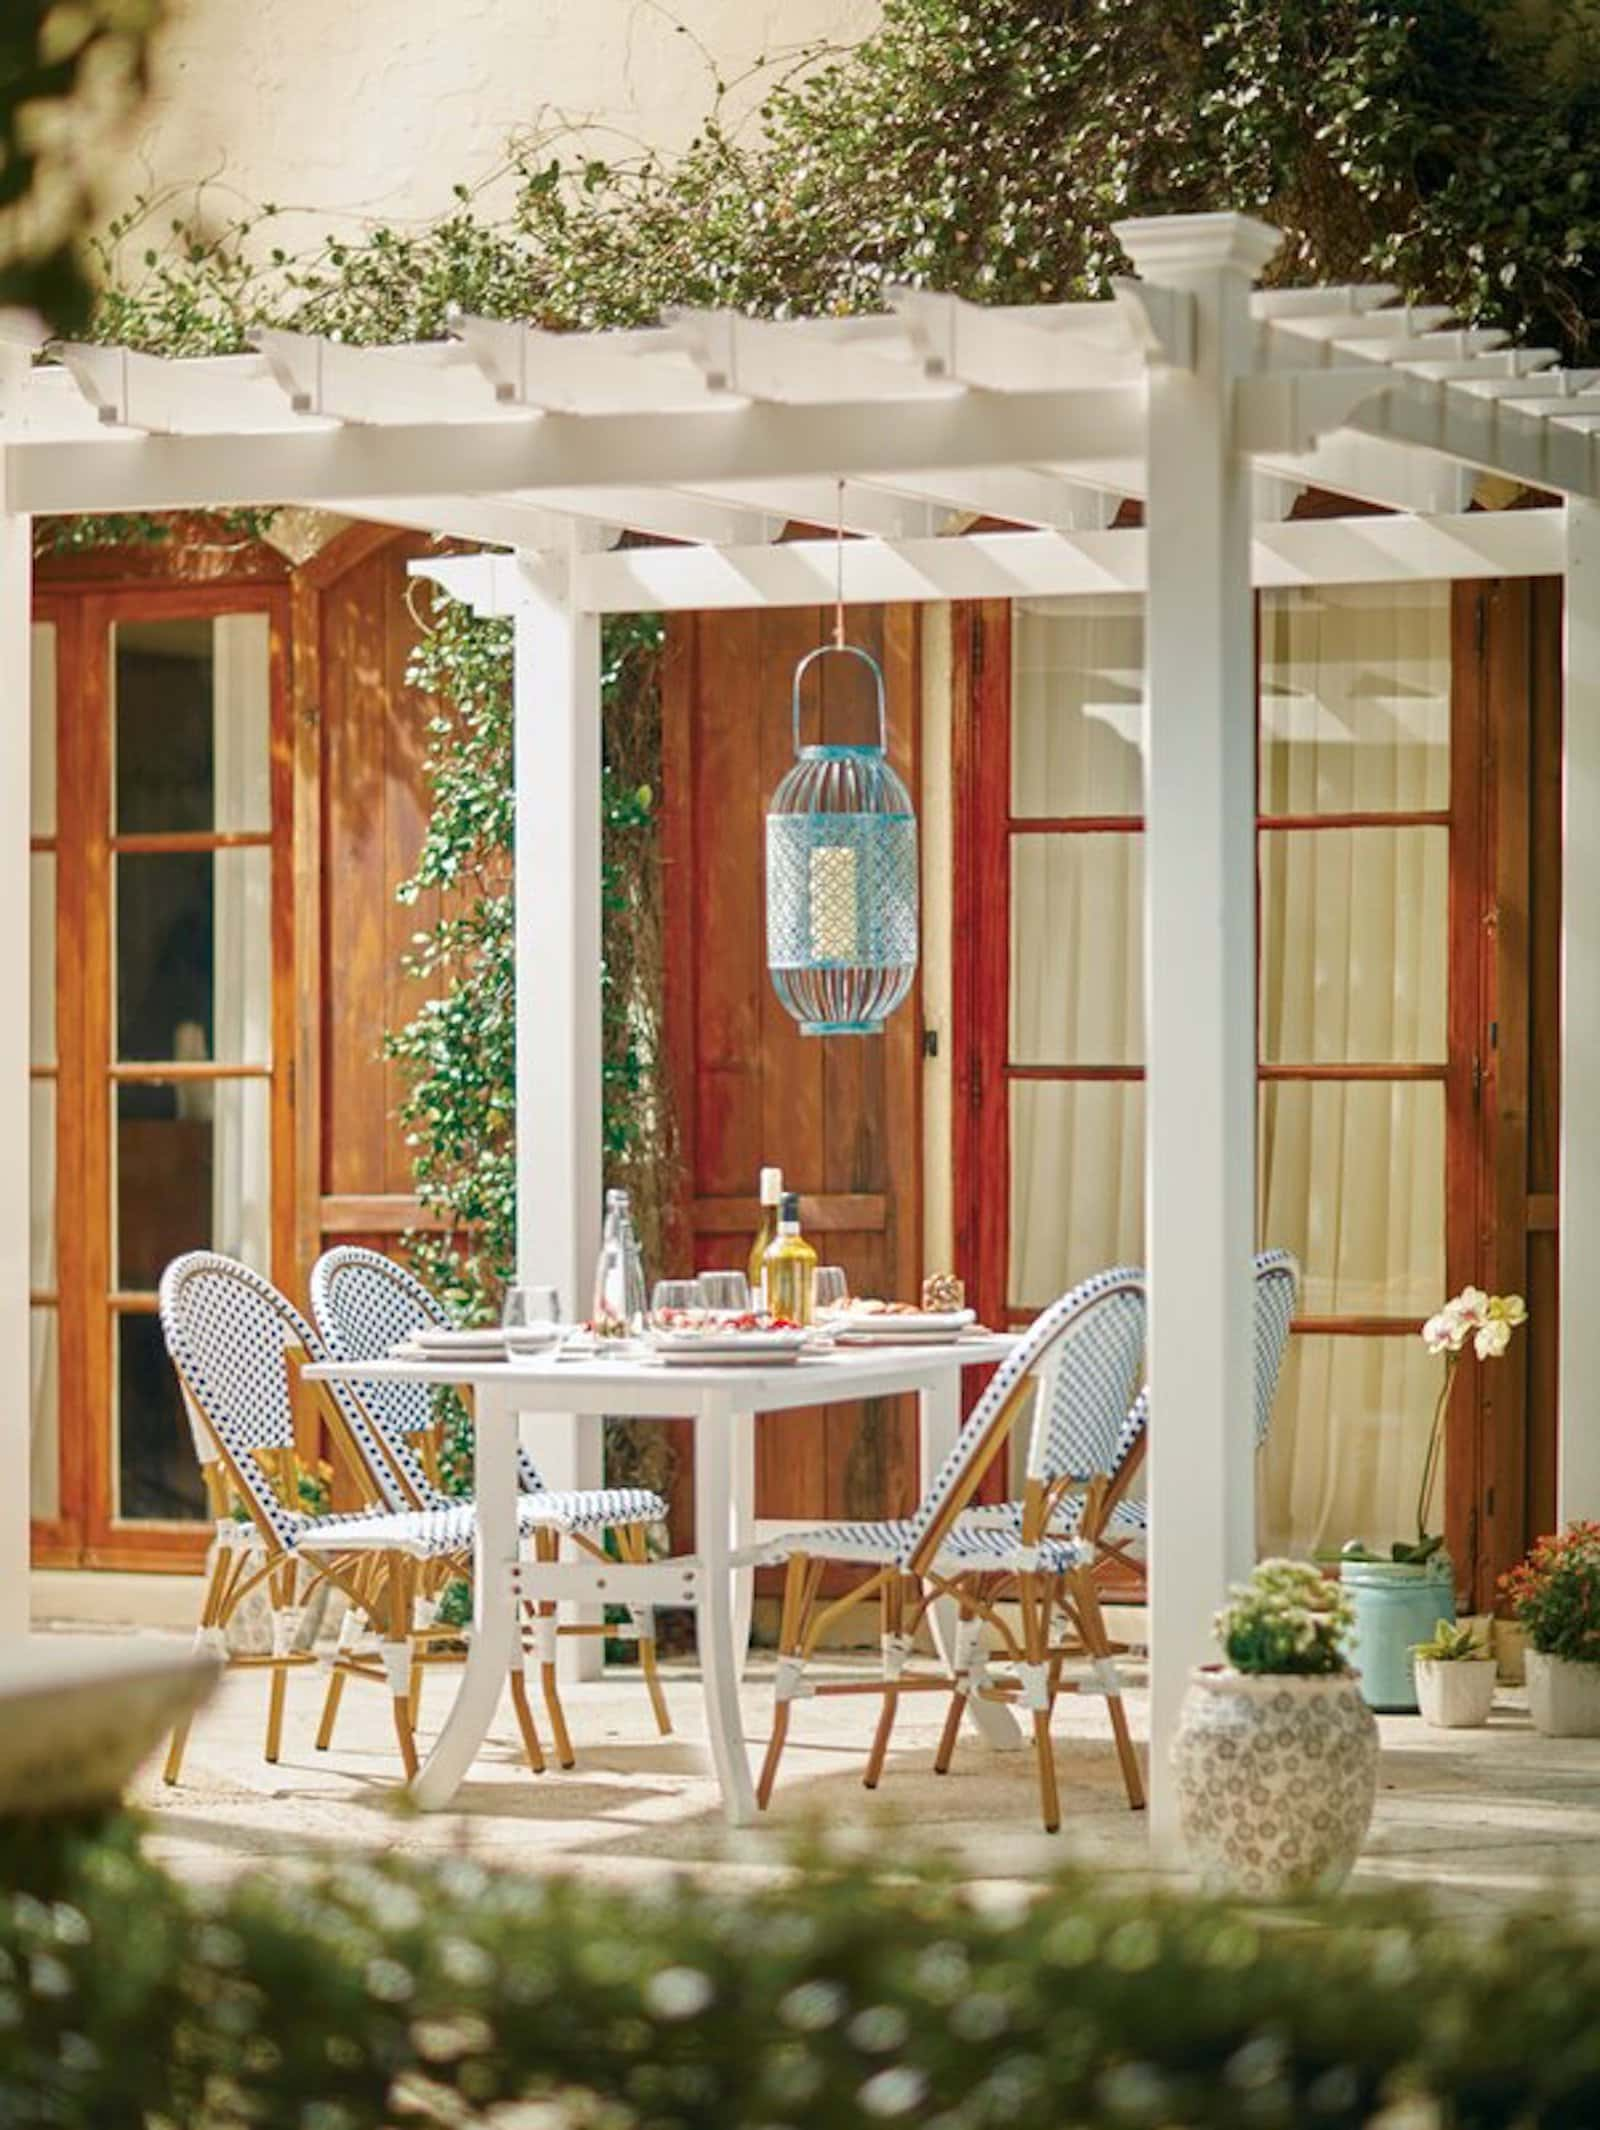 Build a Pergola and Keep It Bare